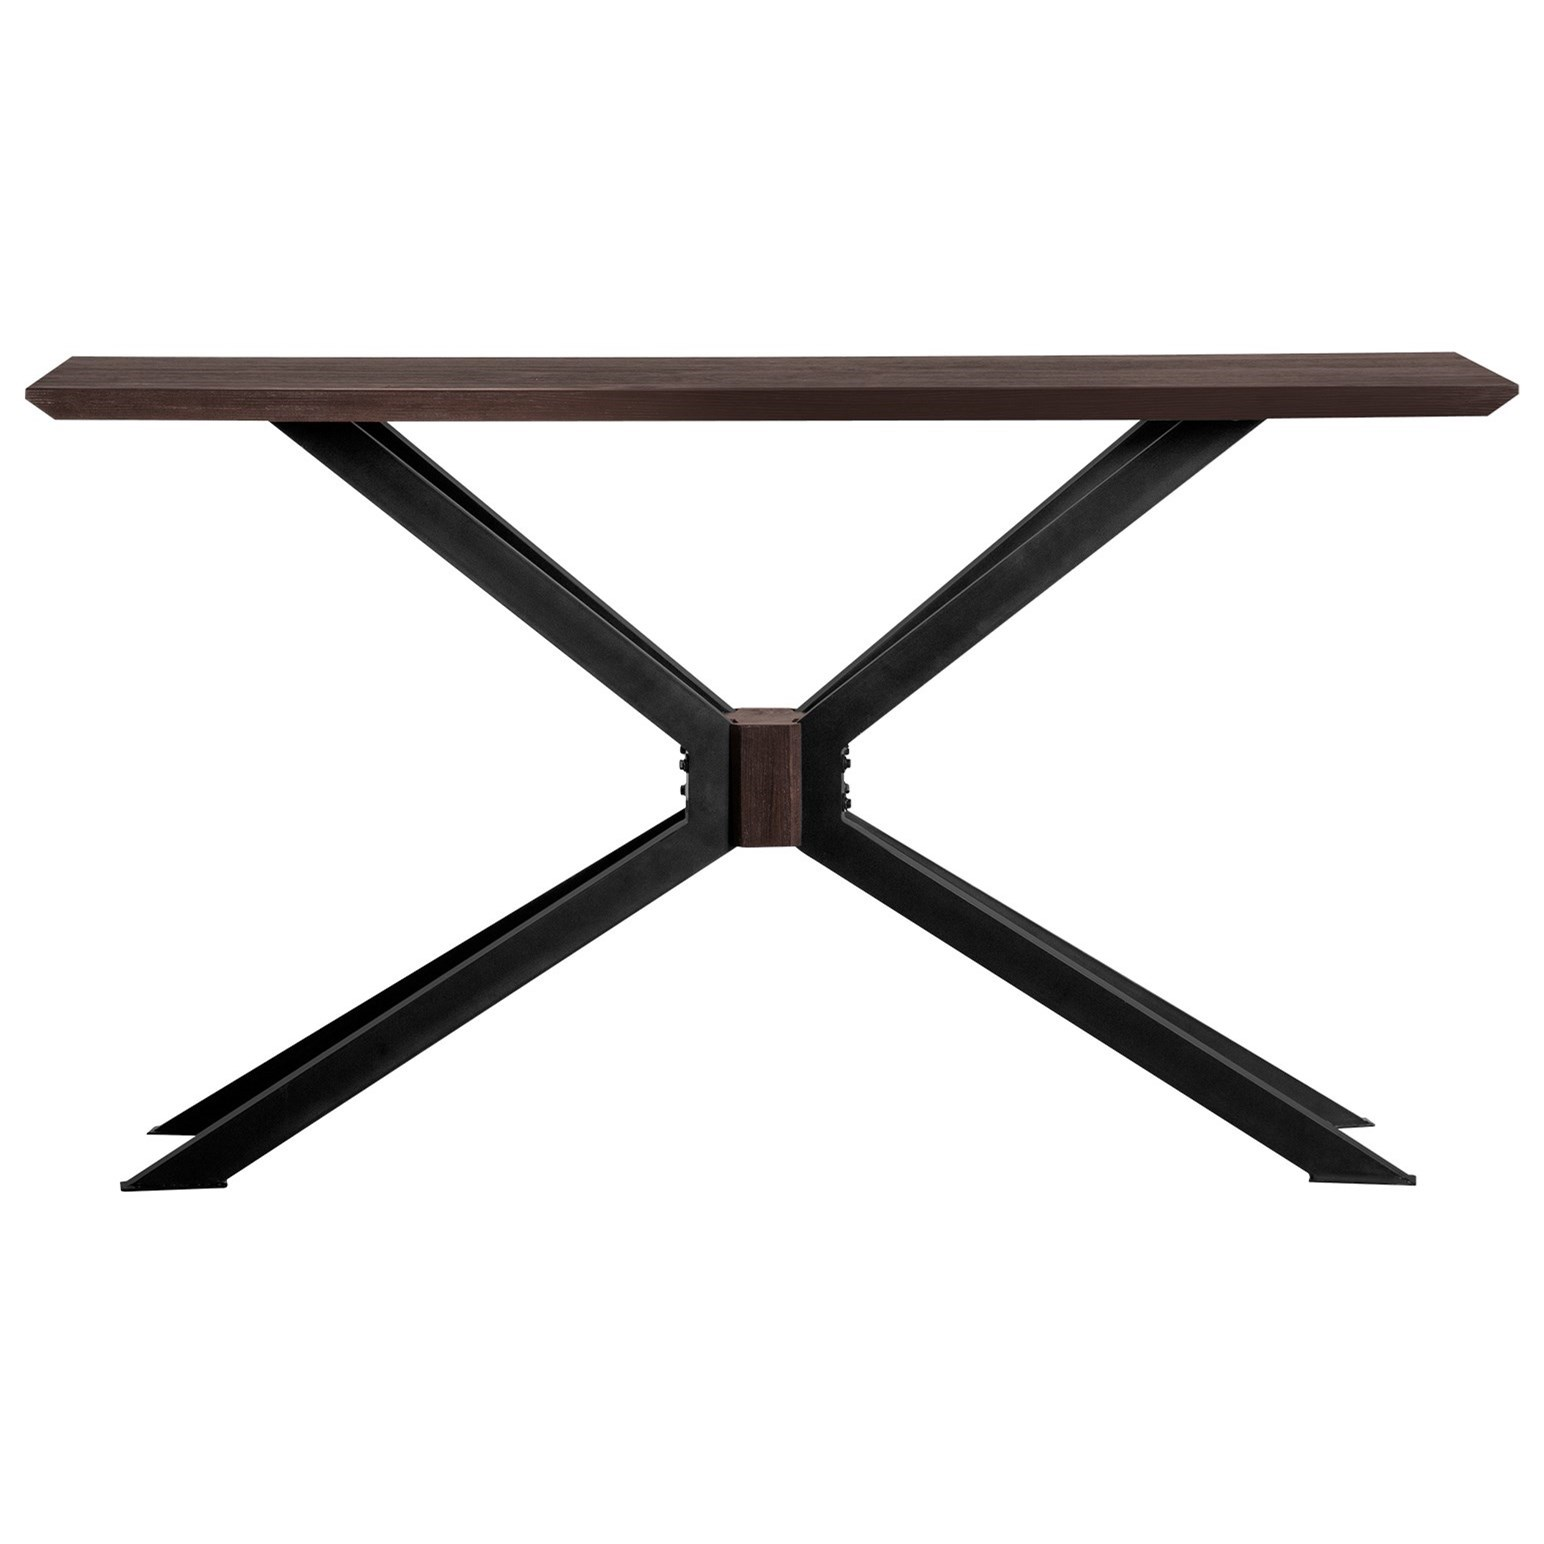 Pirate Acacia Modern Console Table at Sadler's Home Furnishings